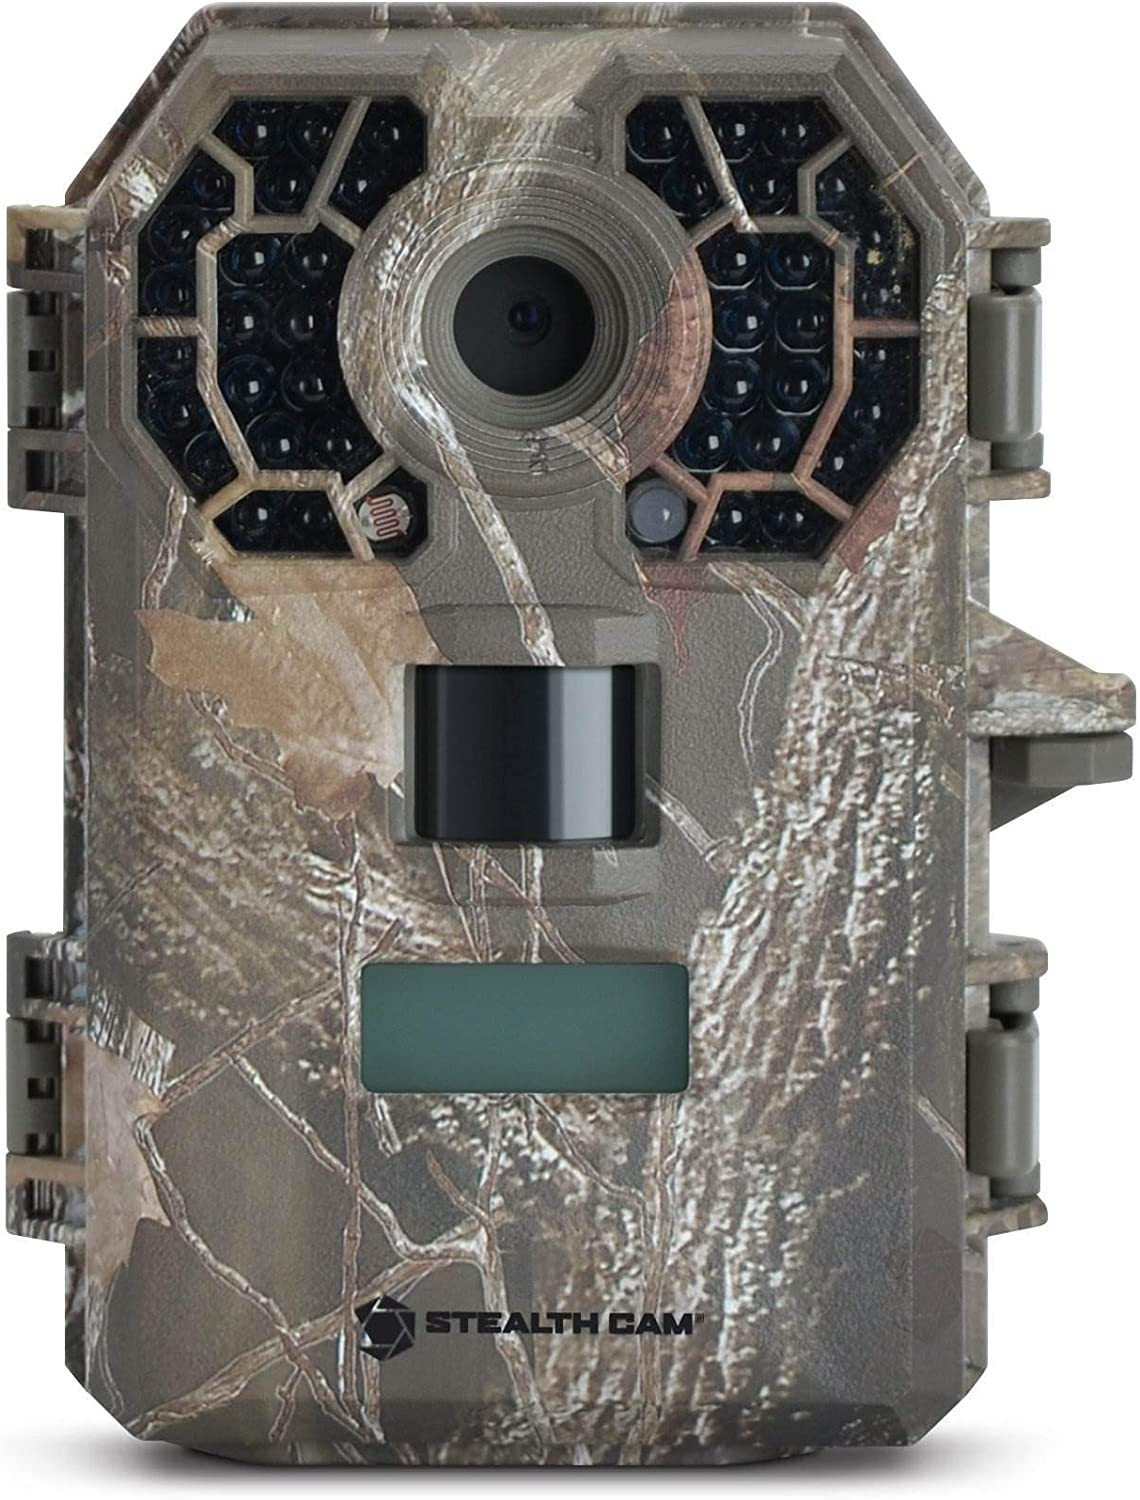 Best stealth cam for nature recording